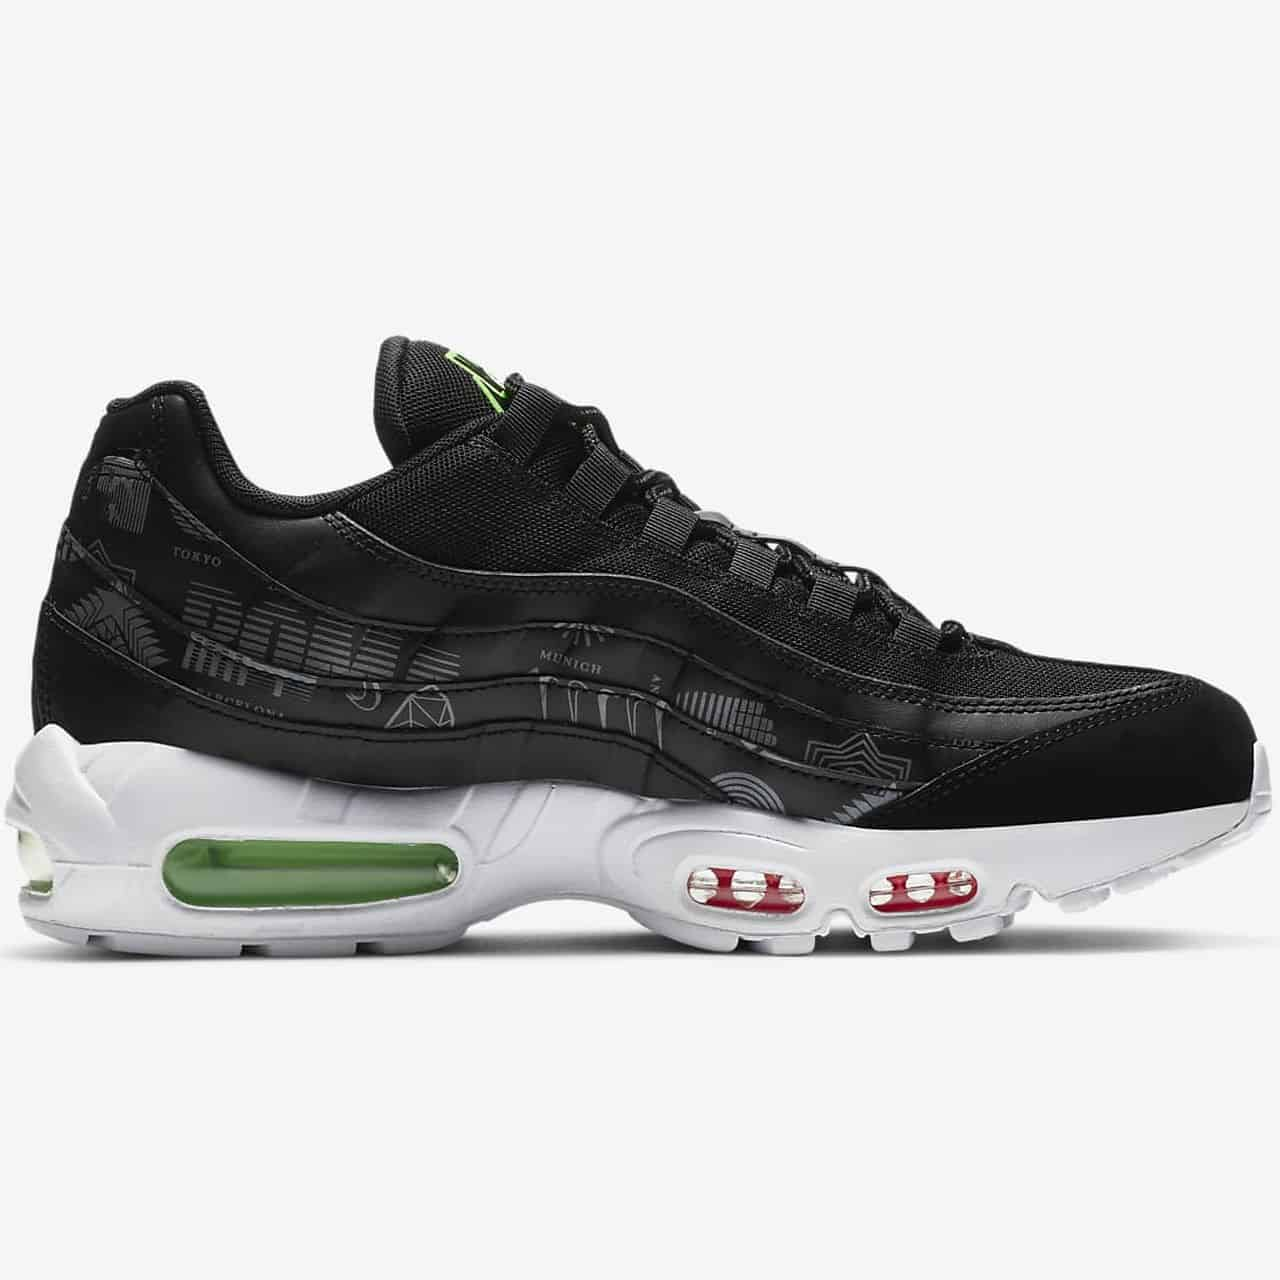 Adidasi Nike Air Max 95 WW - CQ9743 001 17